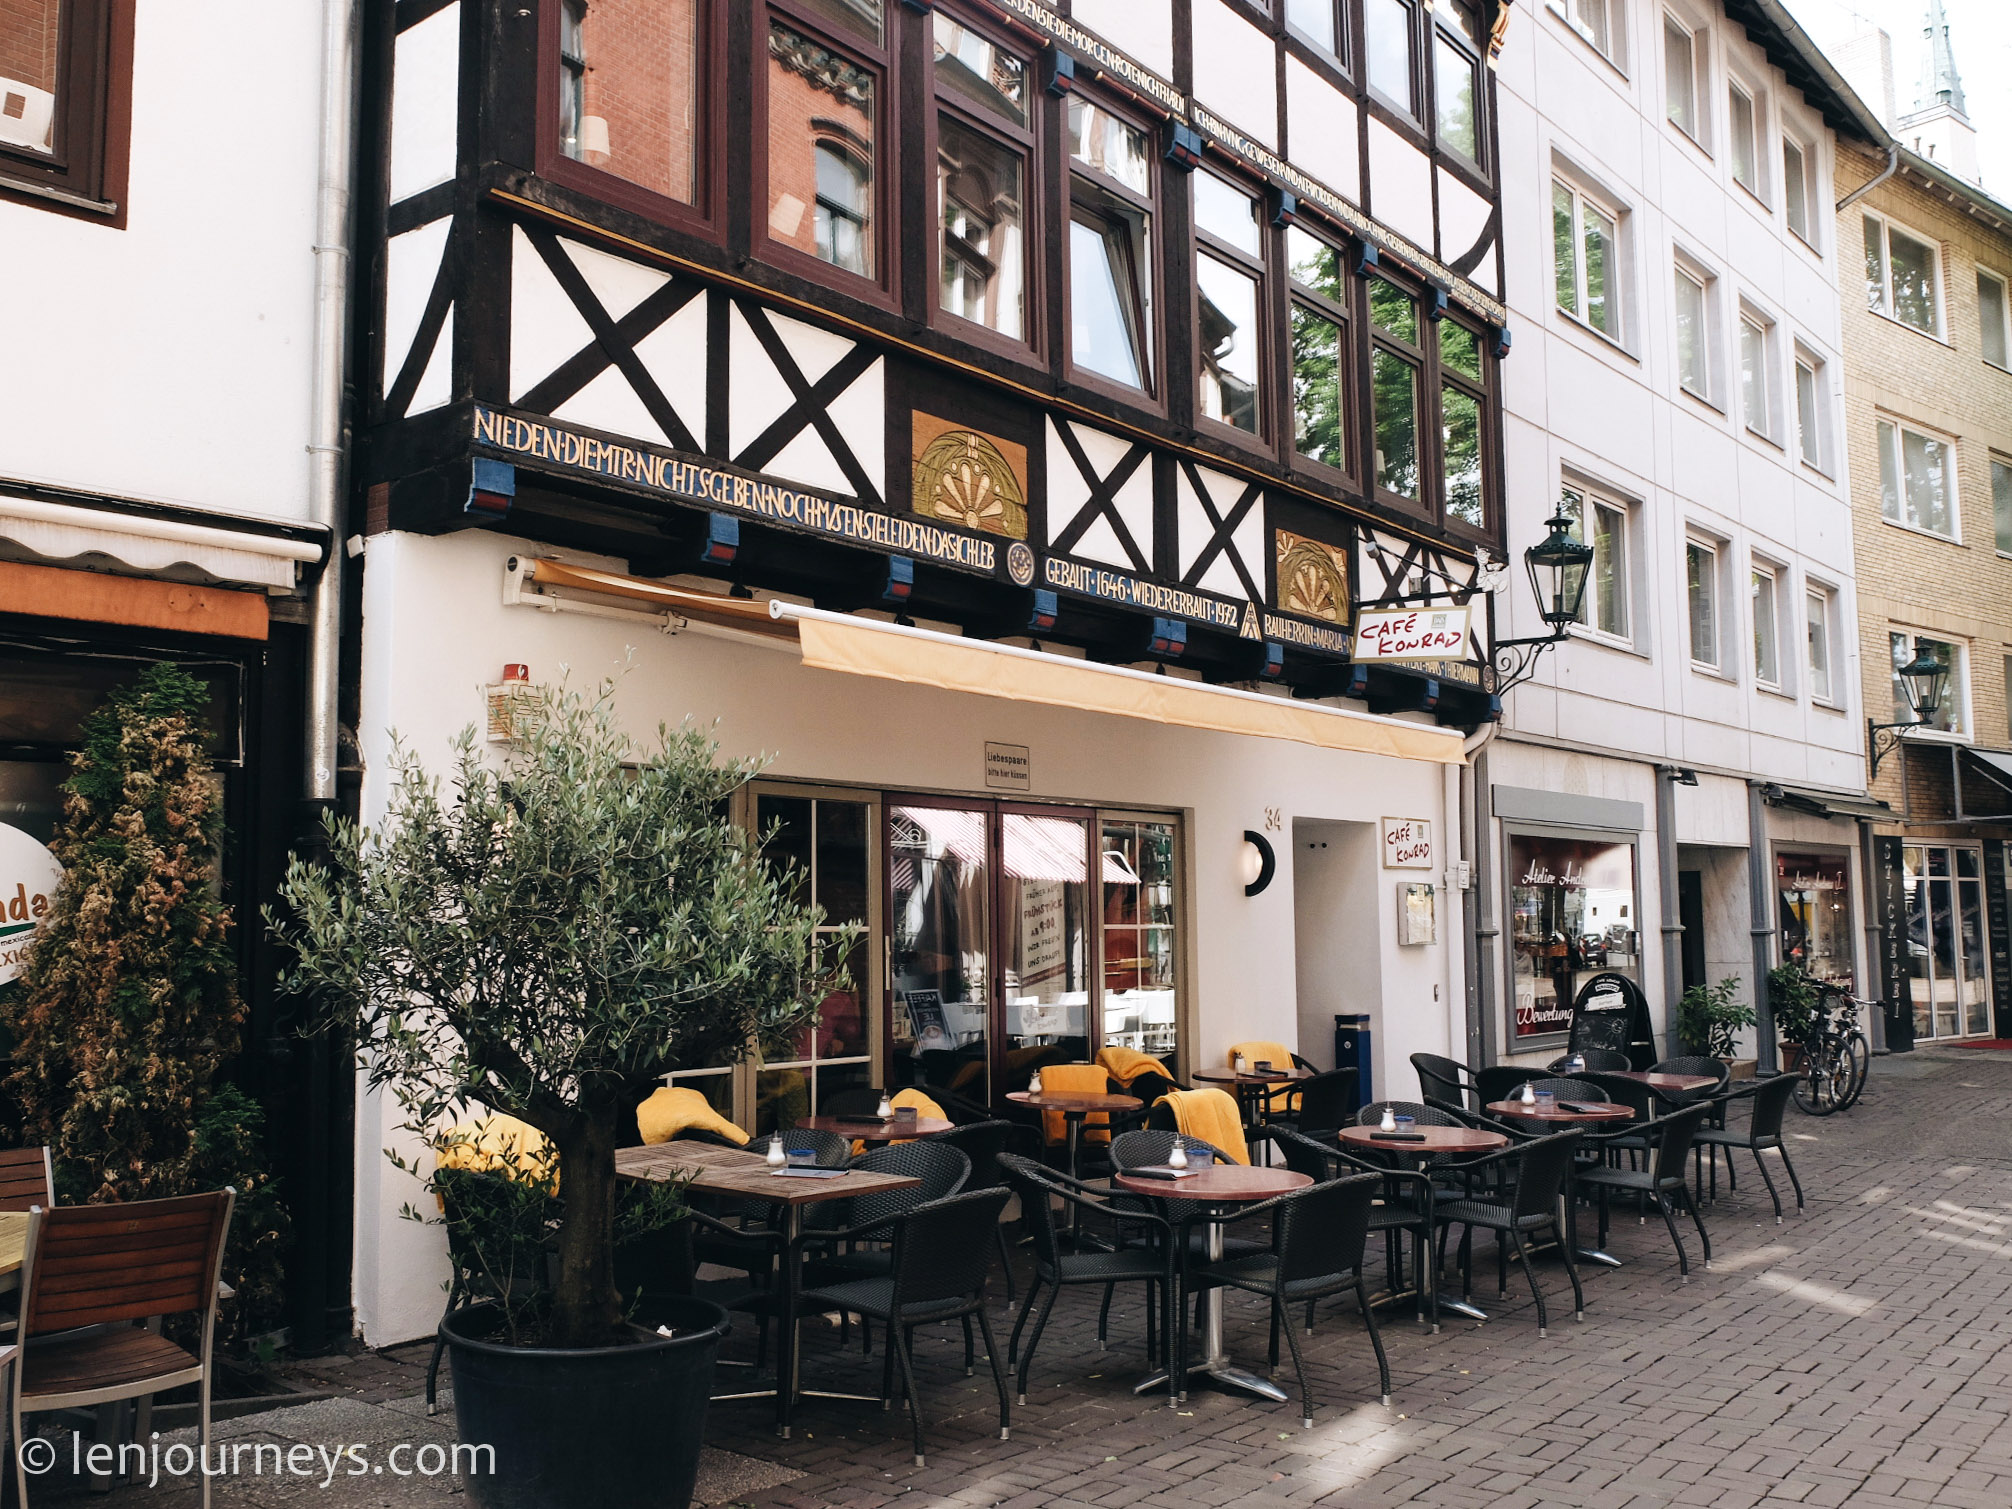 Half-timbered house in Hanover